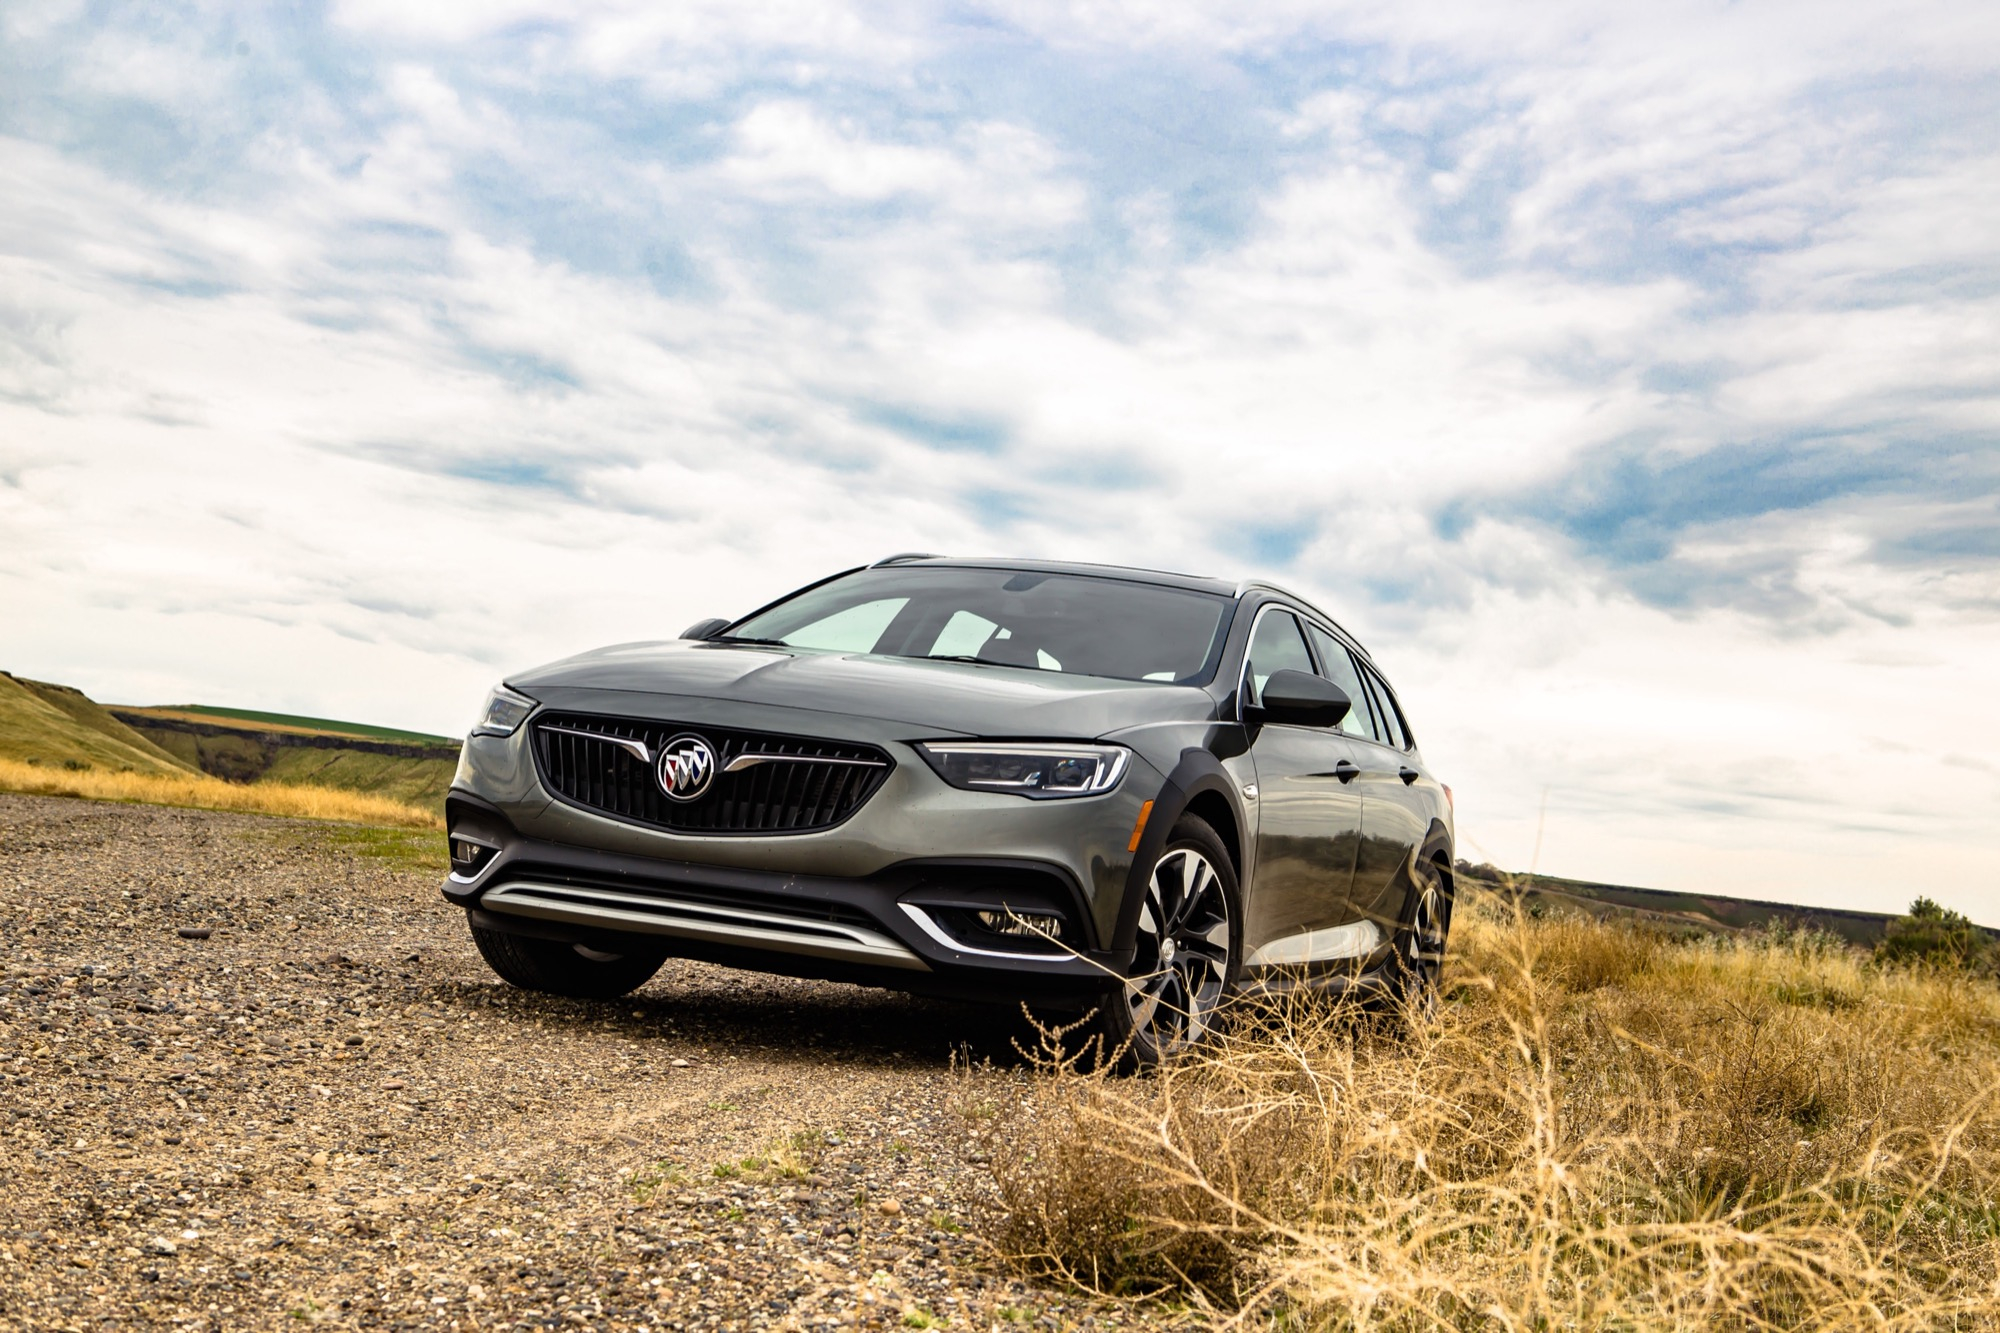 Does Buick Even Want To Sell The Regal Tourx? | Gm Authority New 2021 Buick Regal Tourx Accessories, Changes, Release Date